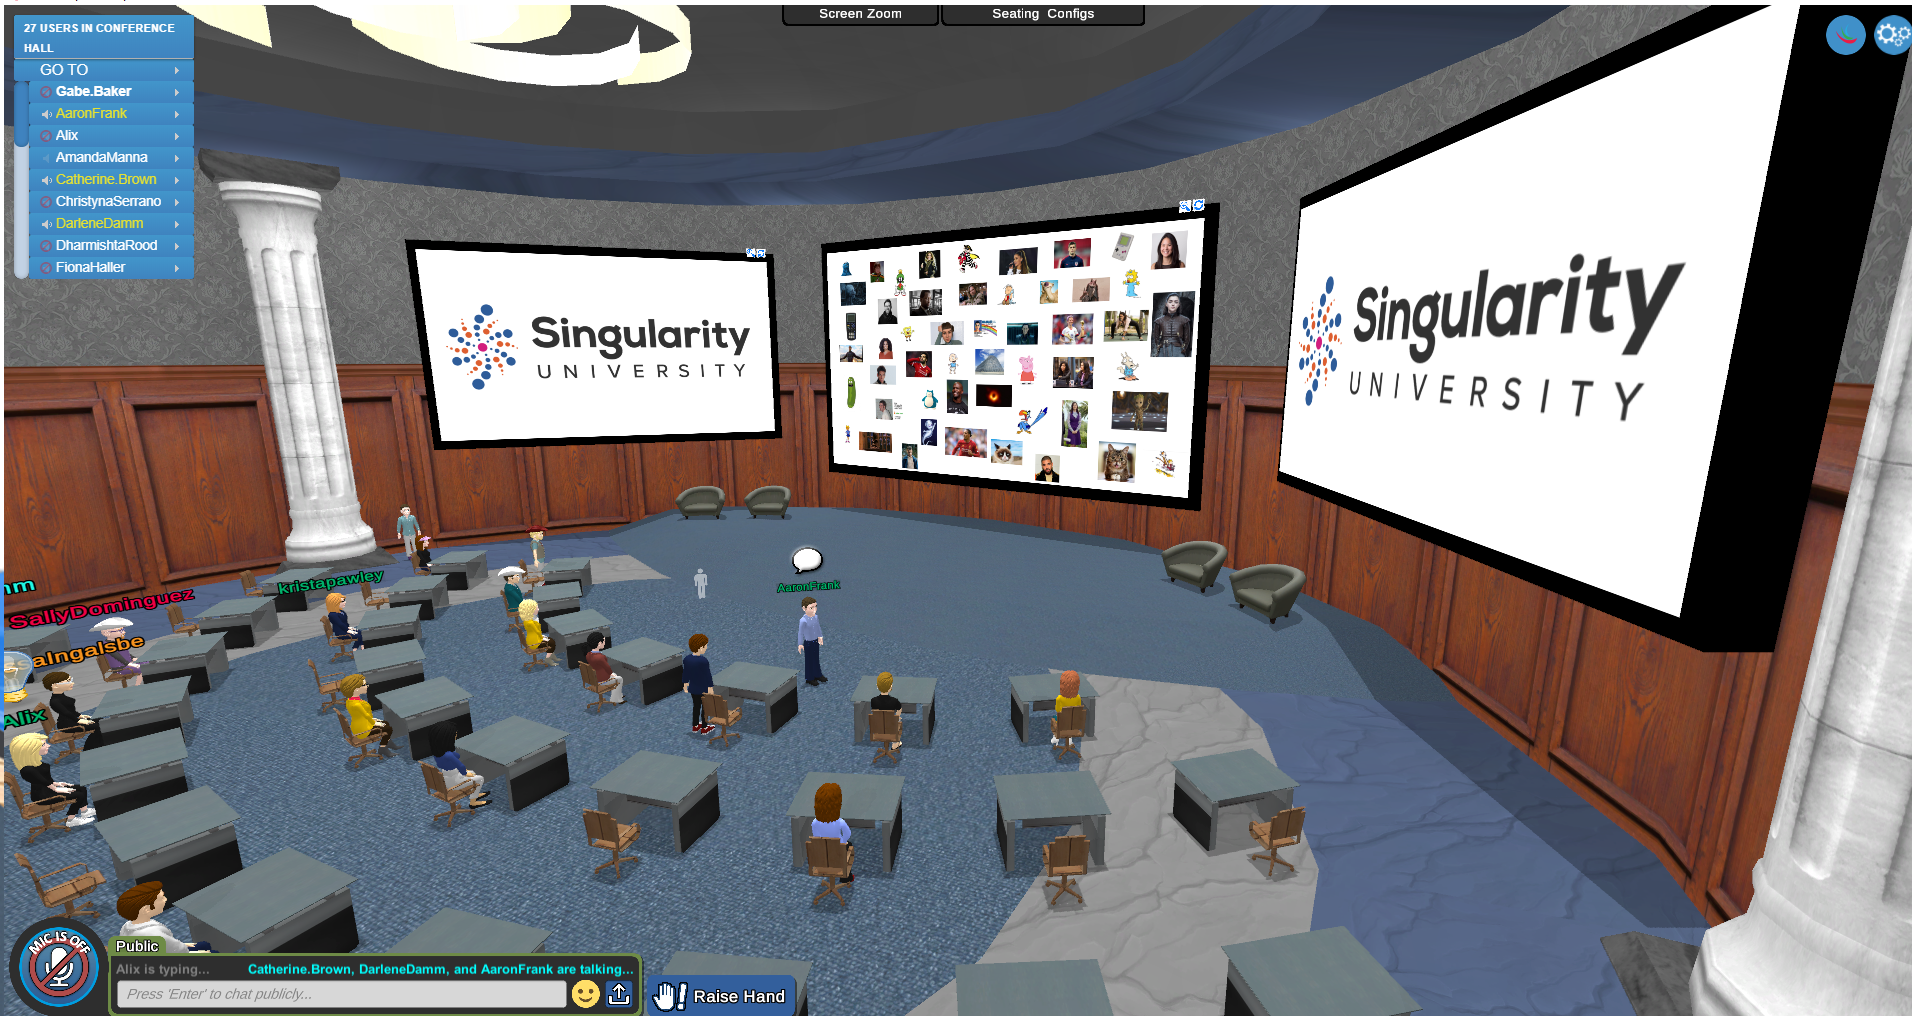 Singularity University using the Conference Hall for an event.